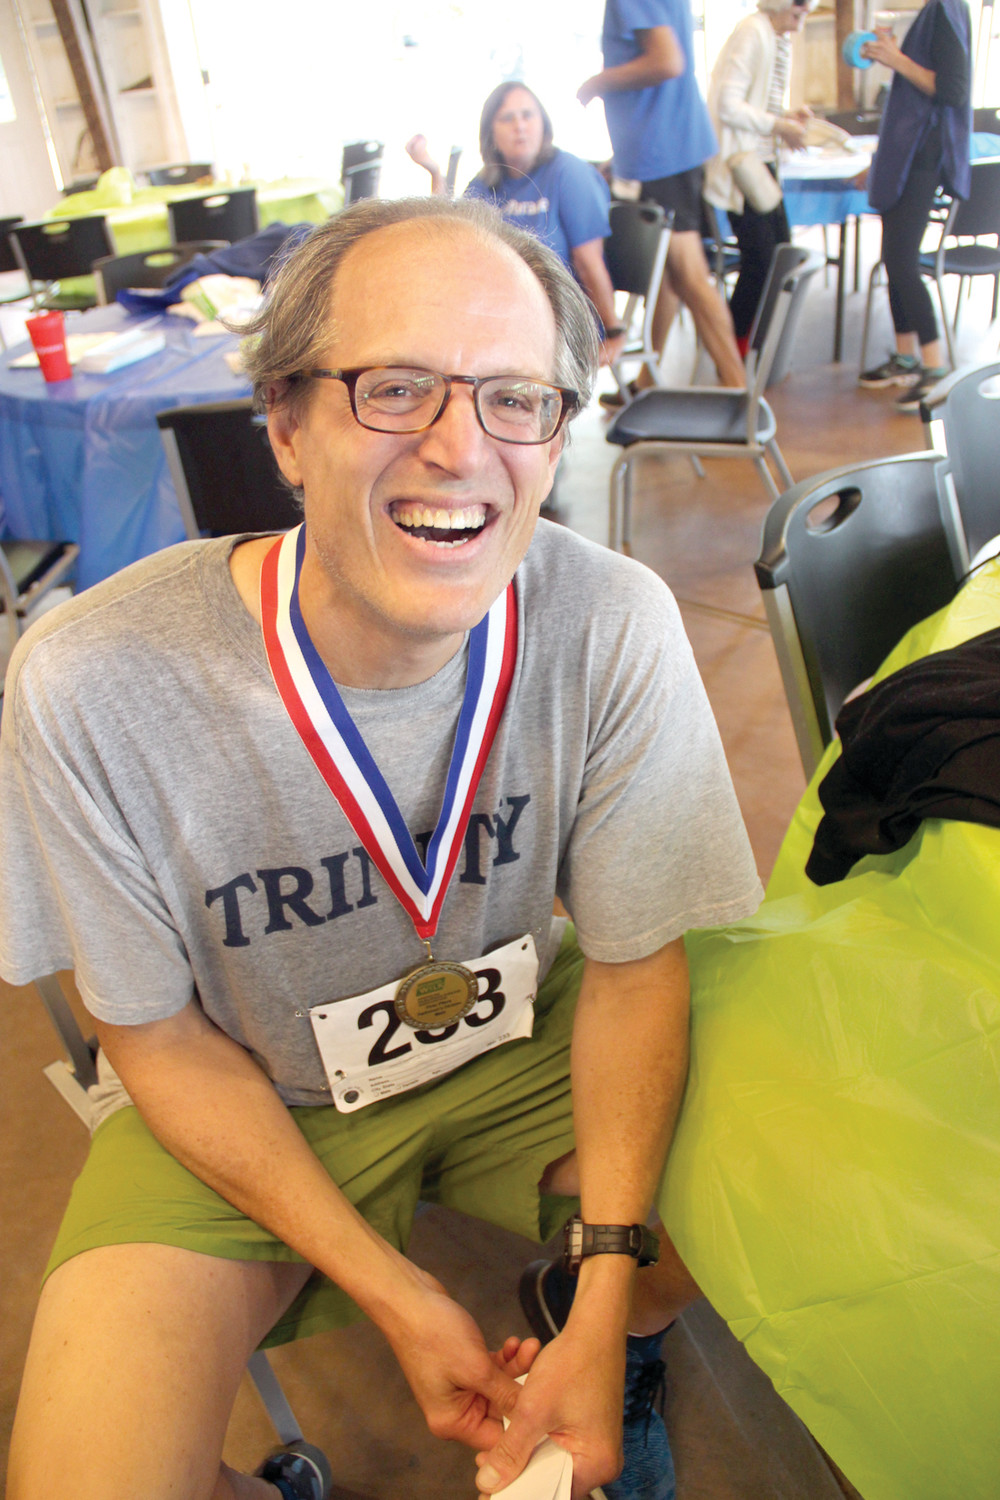 KEEPING ACTIVE: Jeffrey Bartsch, who has Parkinson's, and the first place medal he won as a runner in Saturday's event.